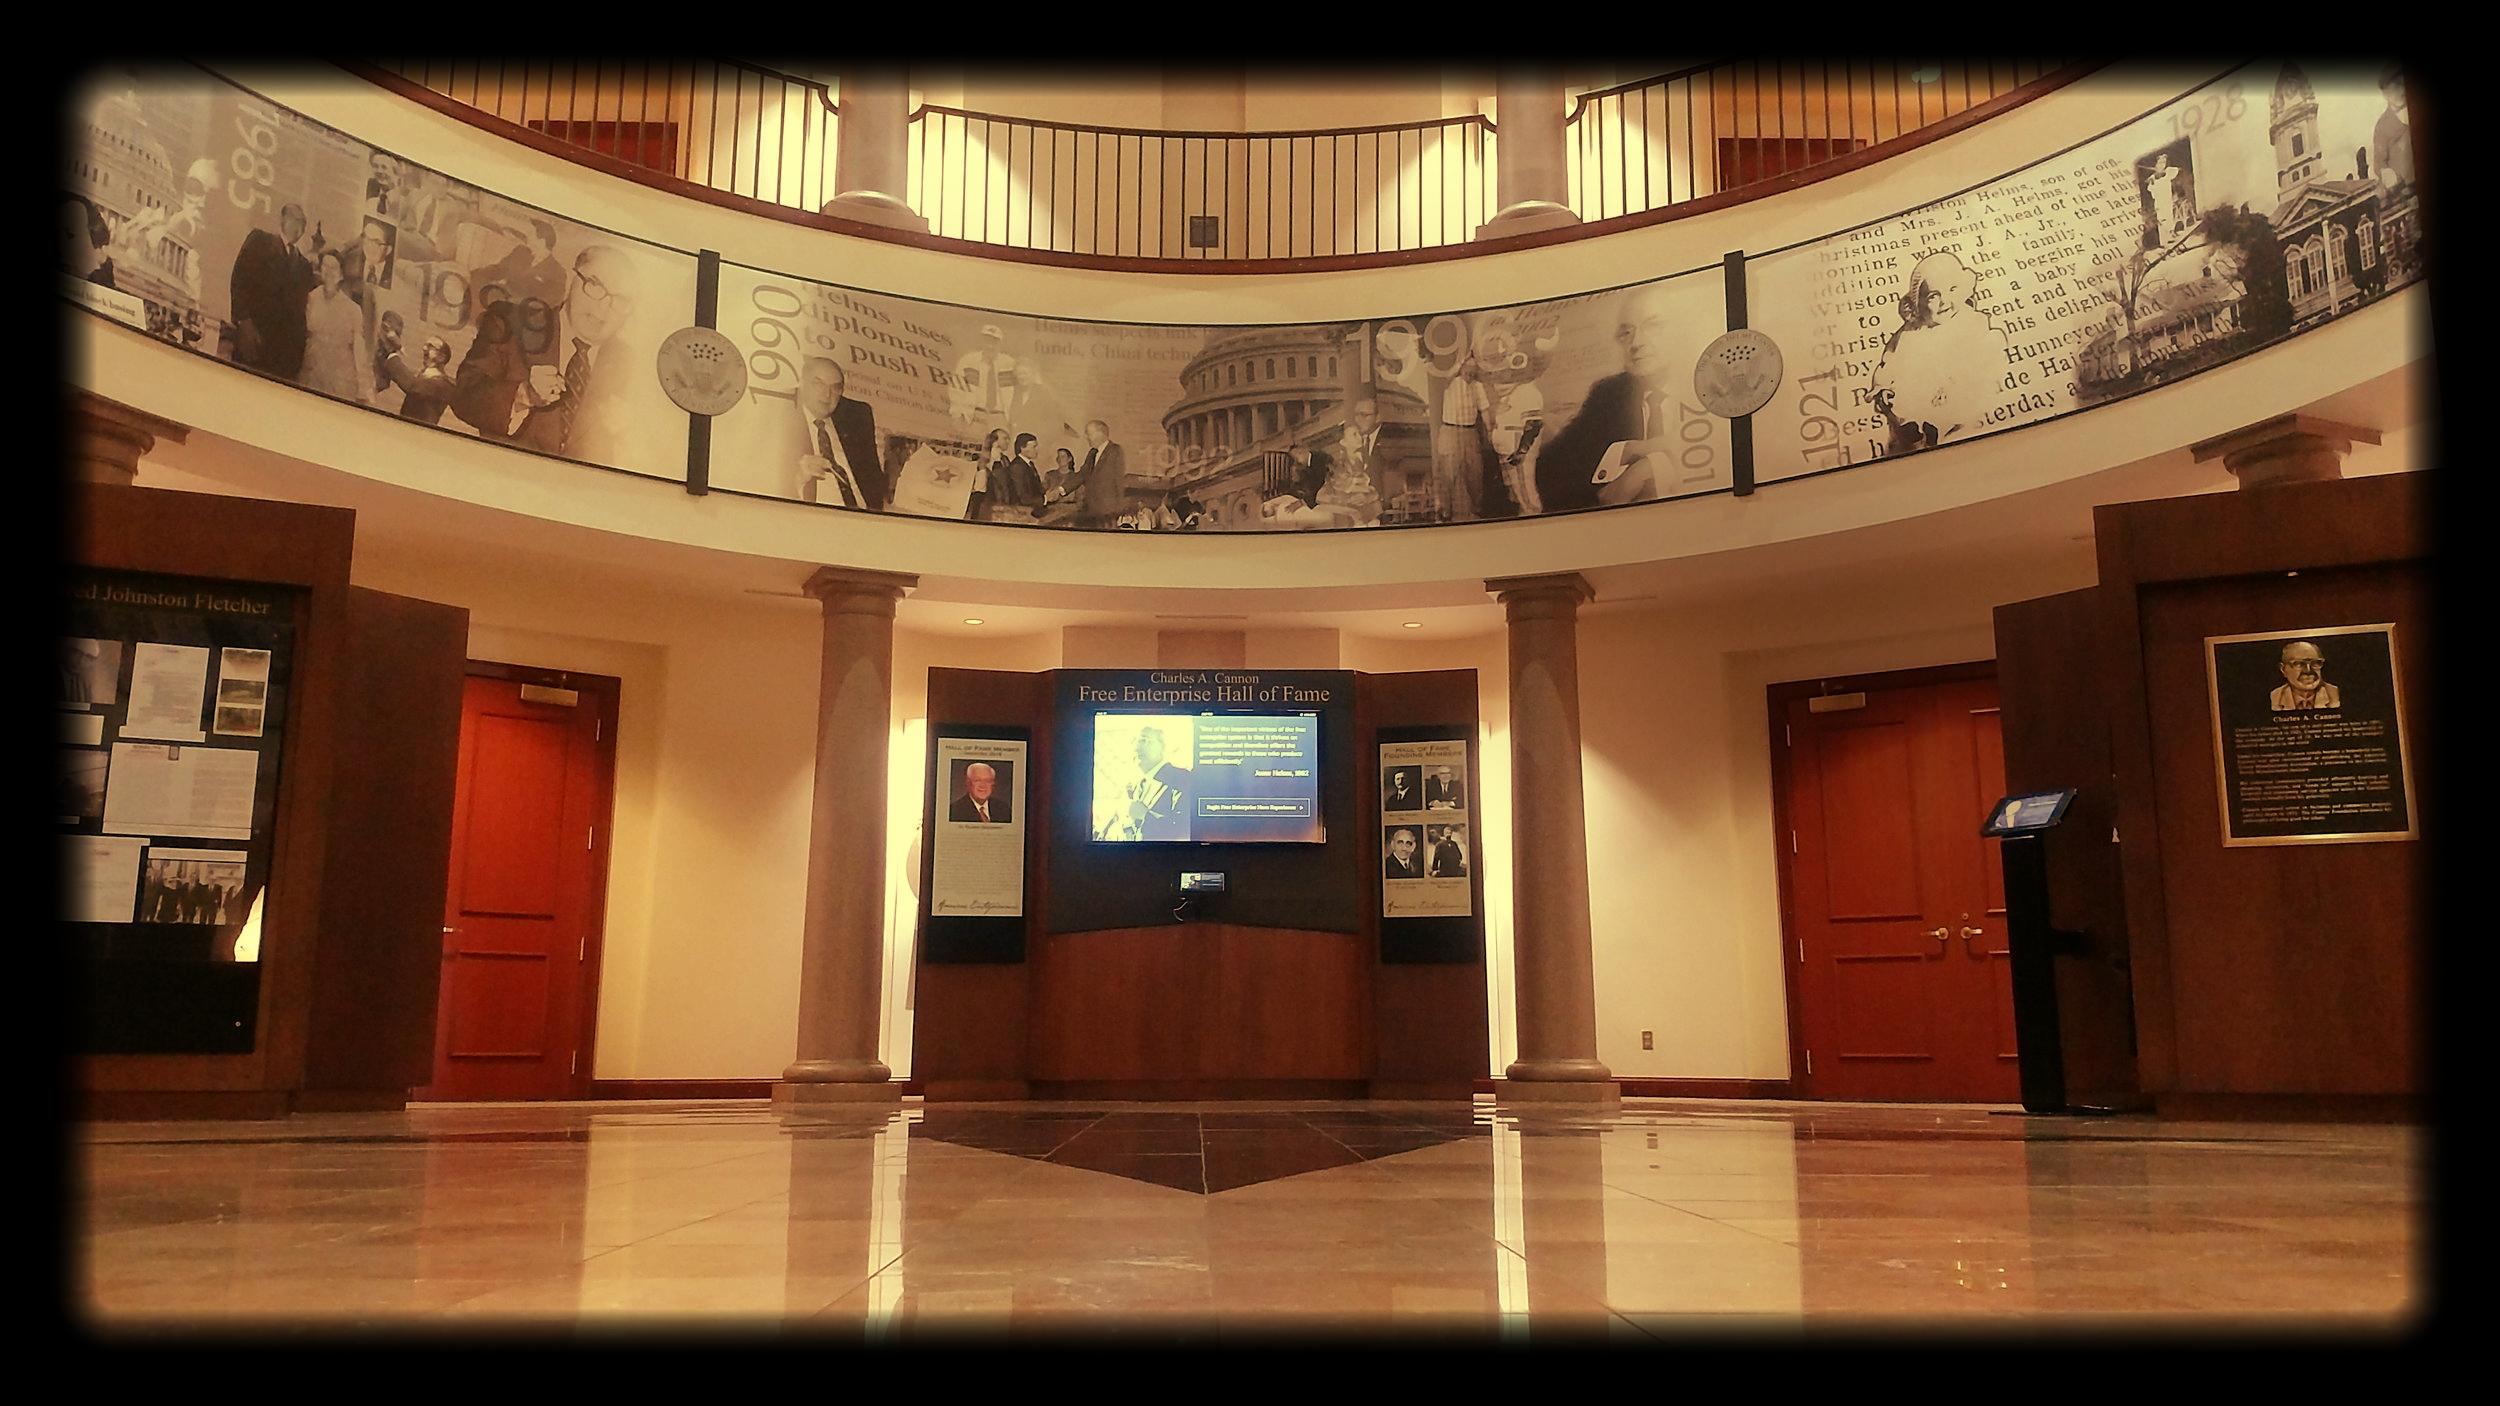 In 2001, The Jesse Helms Center opened the Charles A. CannonFree EnterpriseHall of Fame to honor the men and women dedicated to America's free enterprise system. -